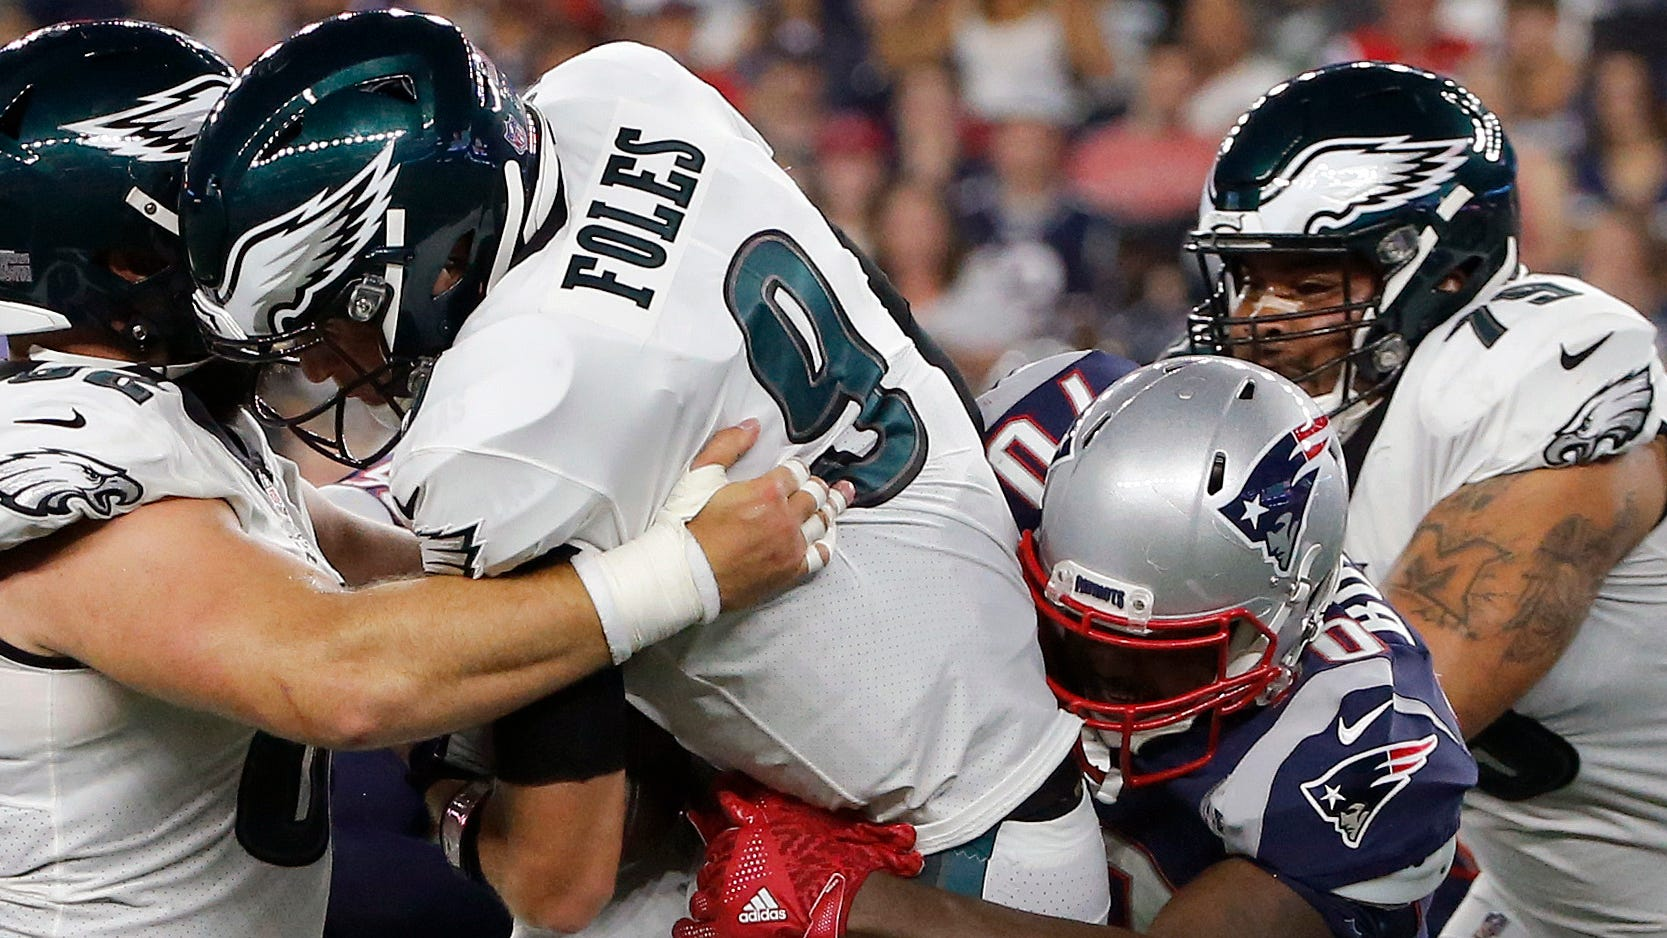 New England Patriots defensive tackle Adam Butler, right, sacks Philadelphia Eagles quarterback Nick Foles during the first half of a preseason NFL football game, Thursday, Aug. 16, 2018, in Foxborough, Mass. (AP Photo/Mary Schwalm)